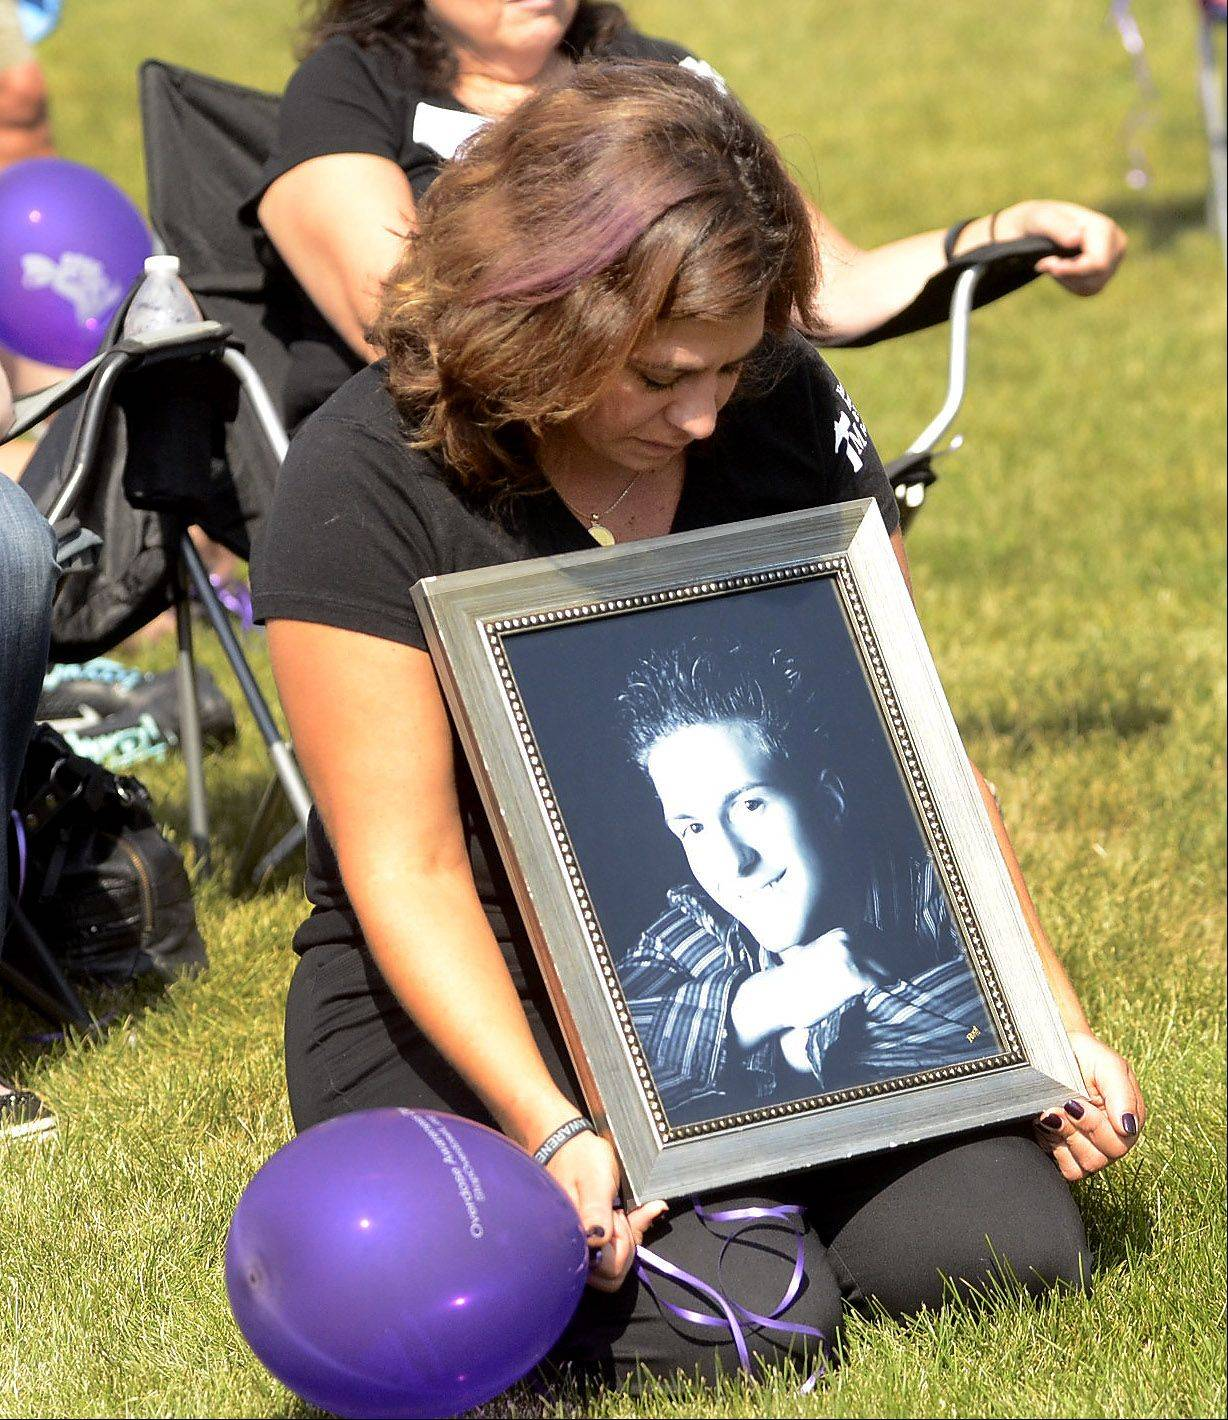 Kristen Gutierrez of Aurora holds a picture of her brother Louie Miceli of Medinah, who died of a heroin overdose last year at the age of 24, during a ceremony honoring those who died during Saturday's overdose awareness event.